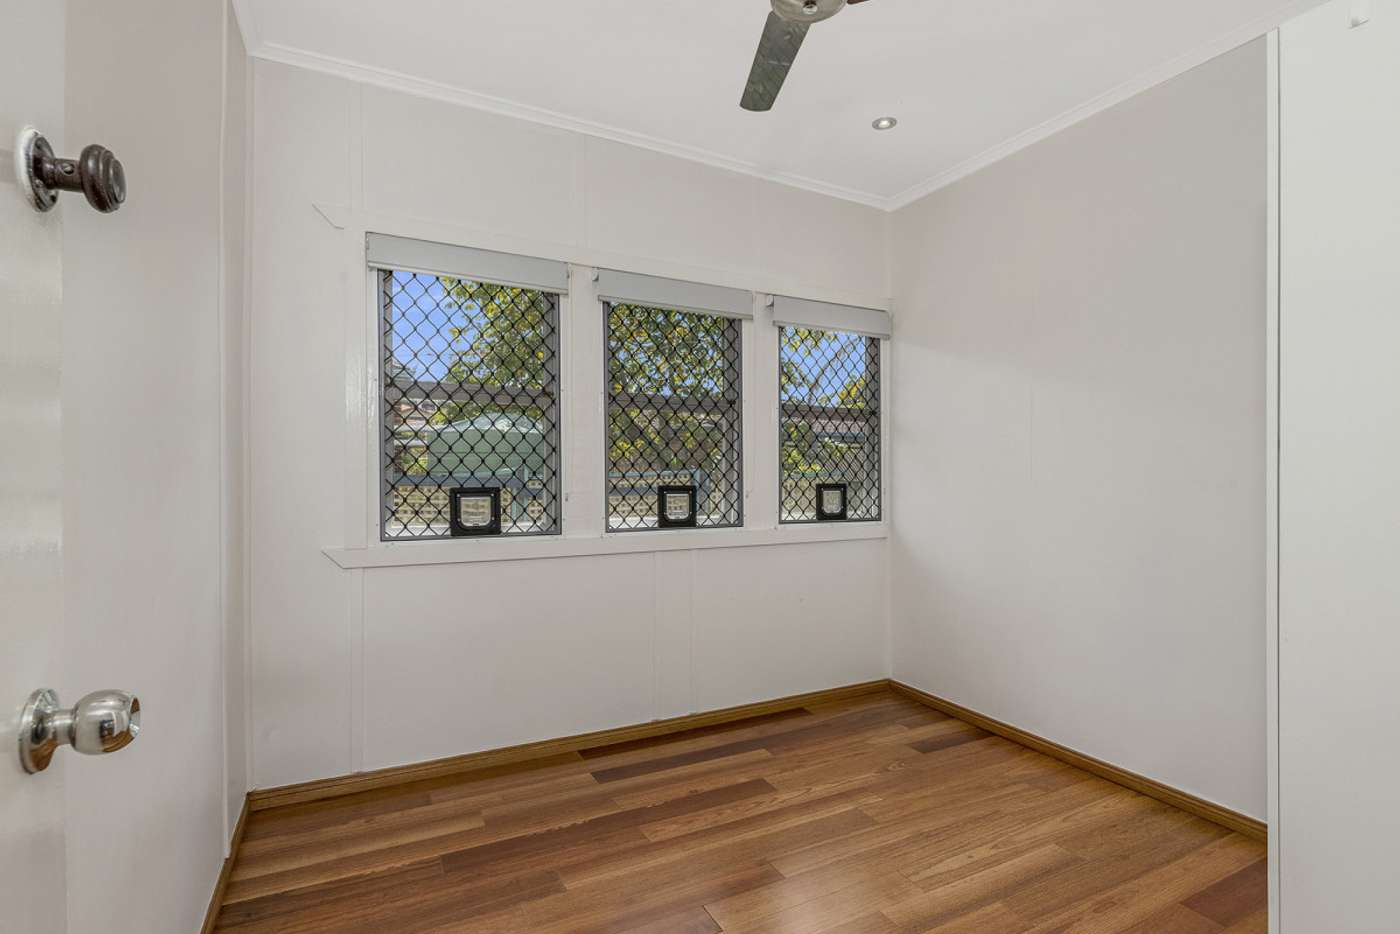 Seventh view of Homely house listing, 283 Mains Road, Sunnybank QLD 4109